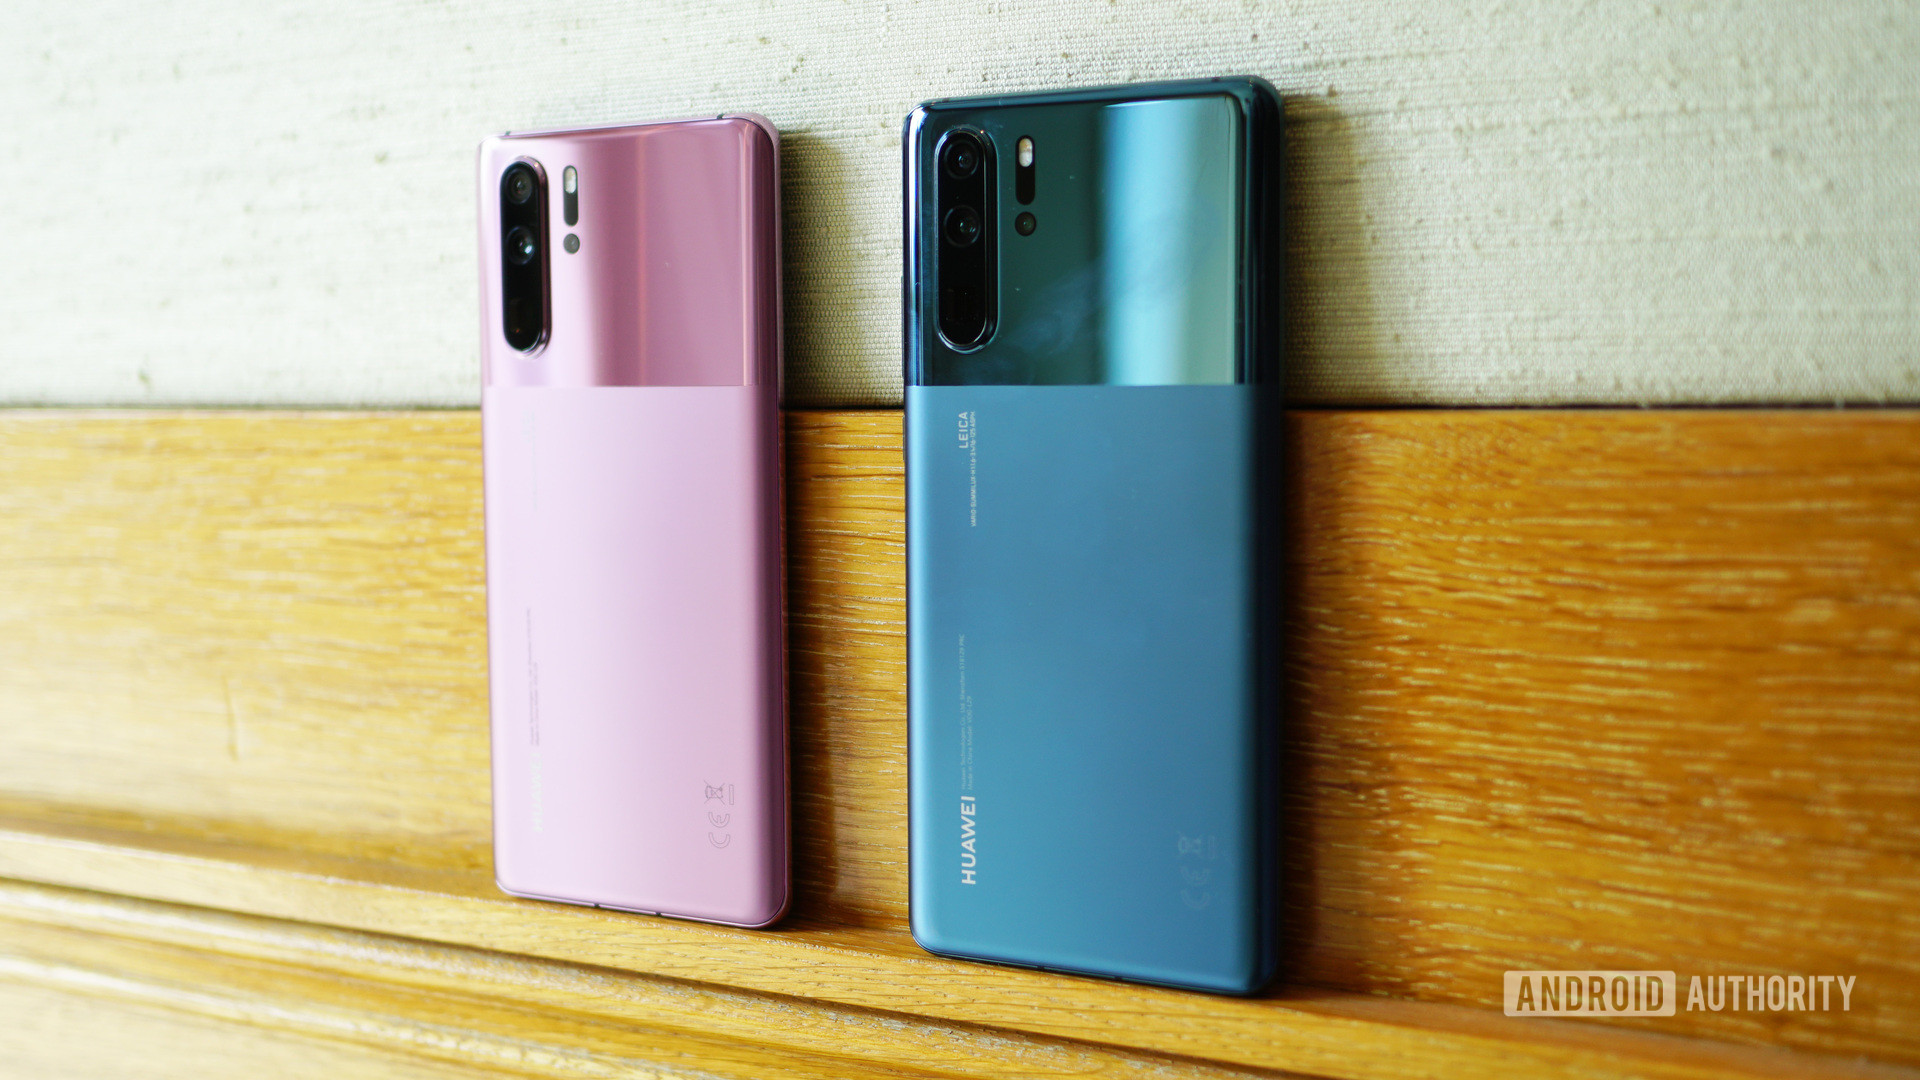 Huawei P30 Pro Gets Two New Colors Android Authority